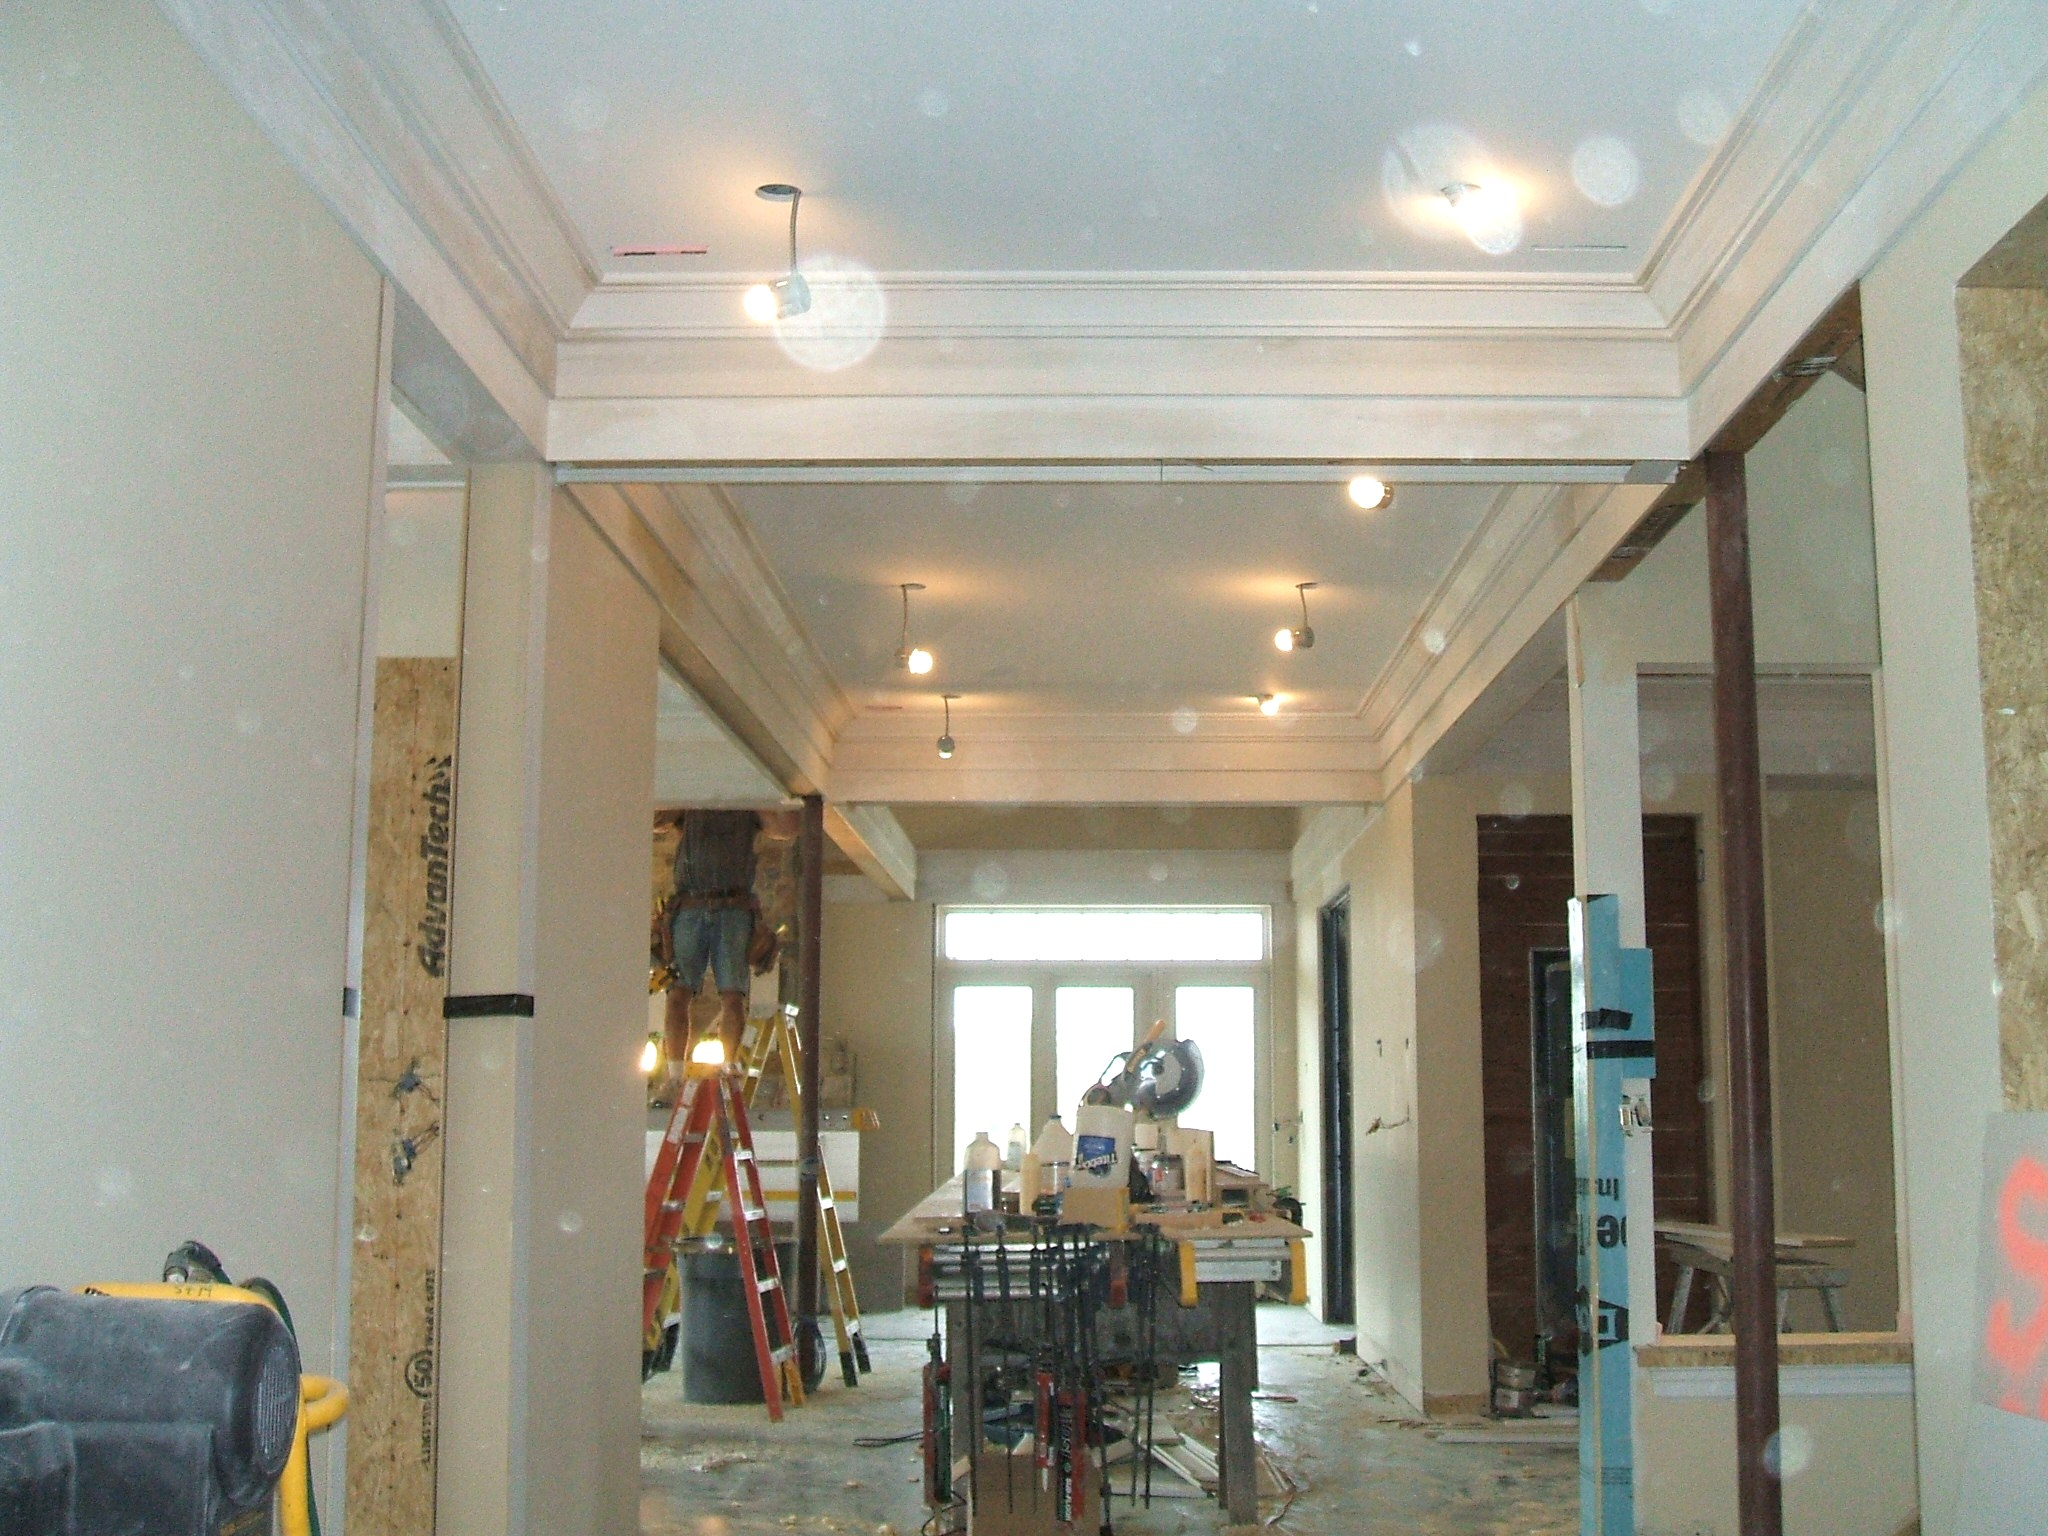 Order of task execution on new construction custom trim outs-870.jpg